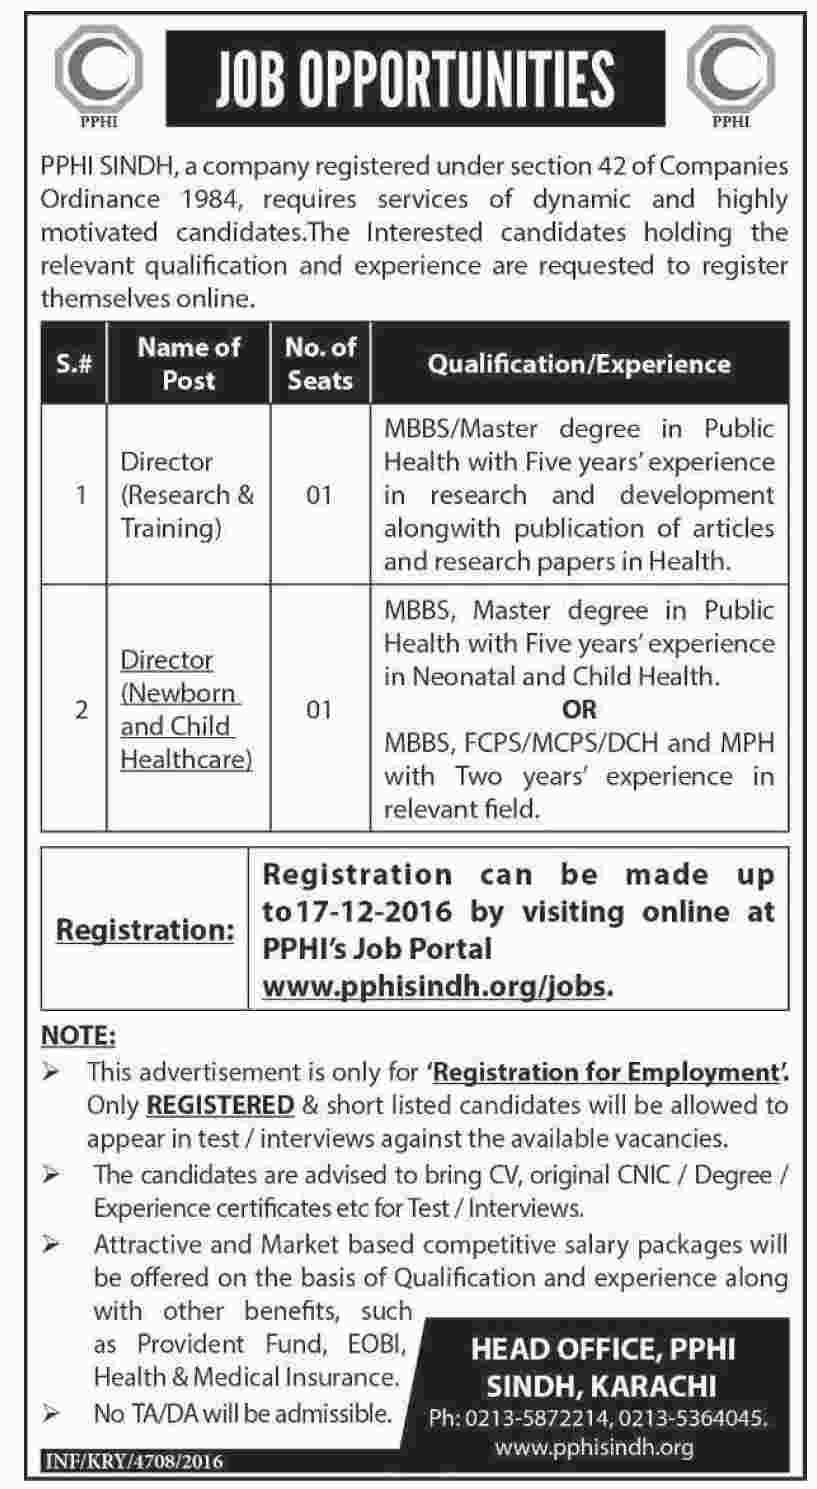 pphi sindh jobs available for vacancies apply online by pphi sindh jobs are available for 2 vacancies of directors required qualification from a recognized institution relevant work experience and age limit